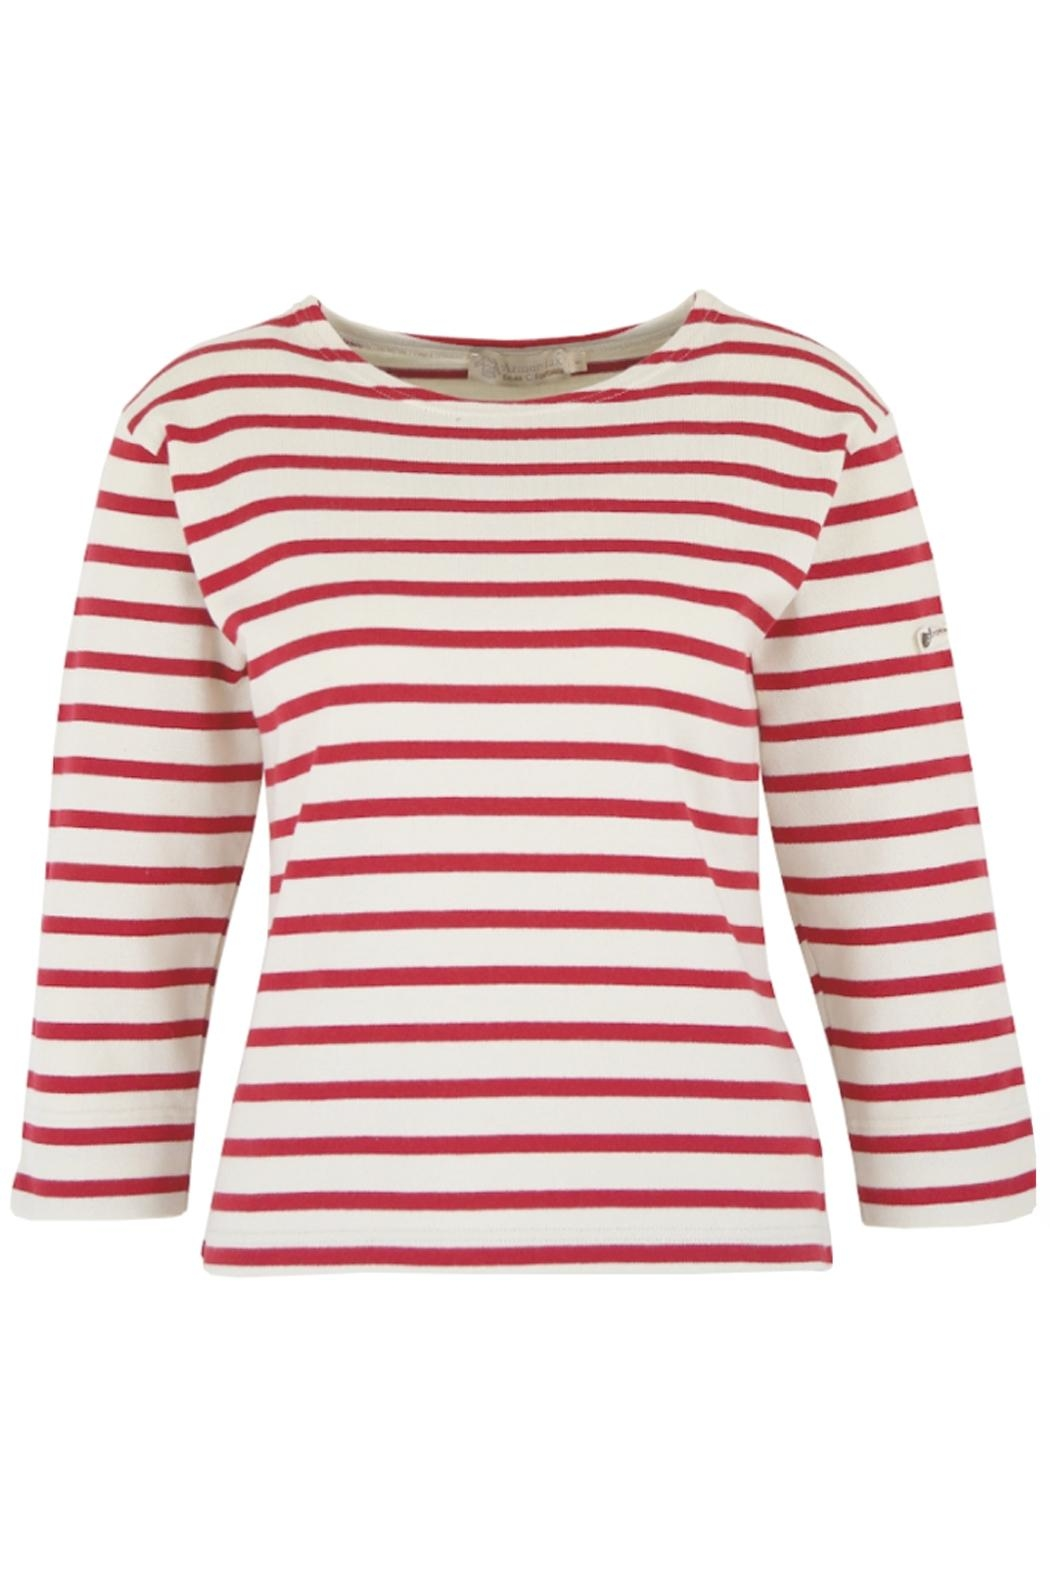 Armor Lux Red Breton Shirt - Main Image